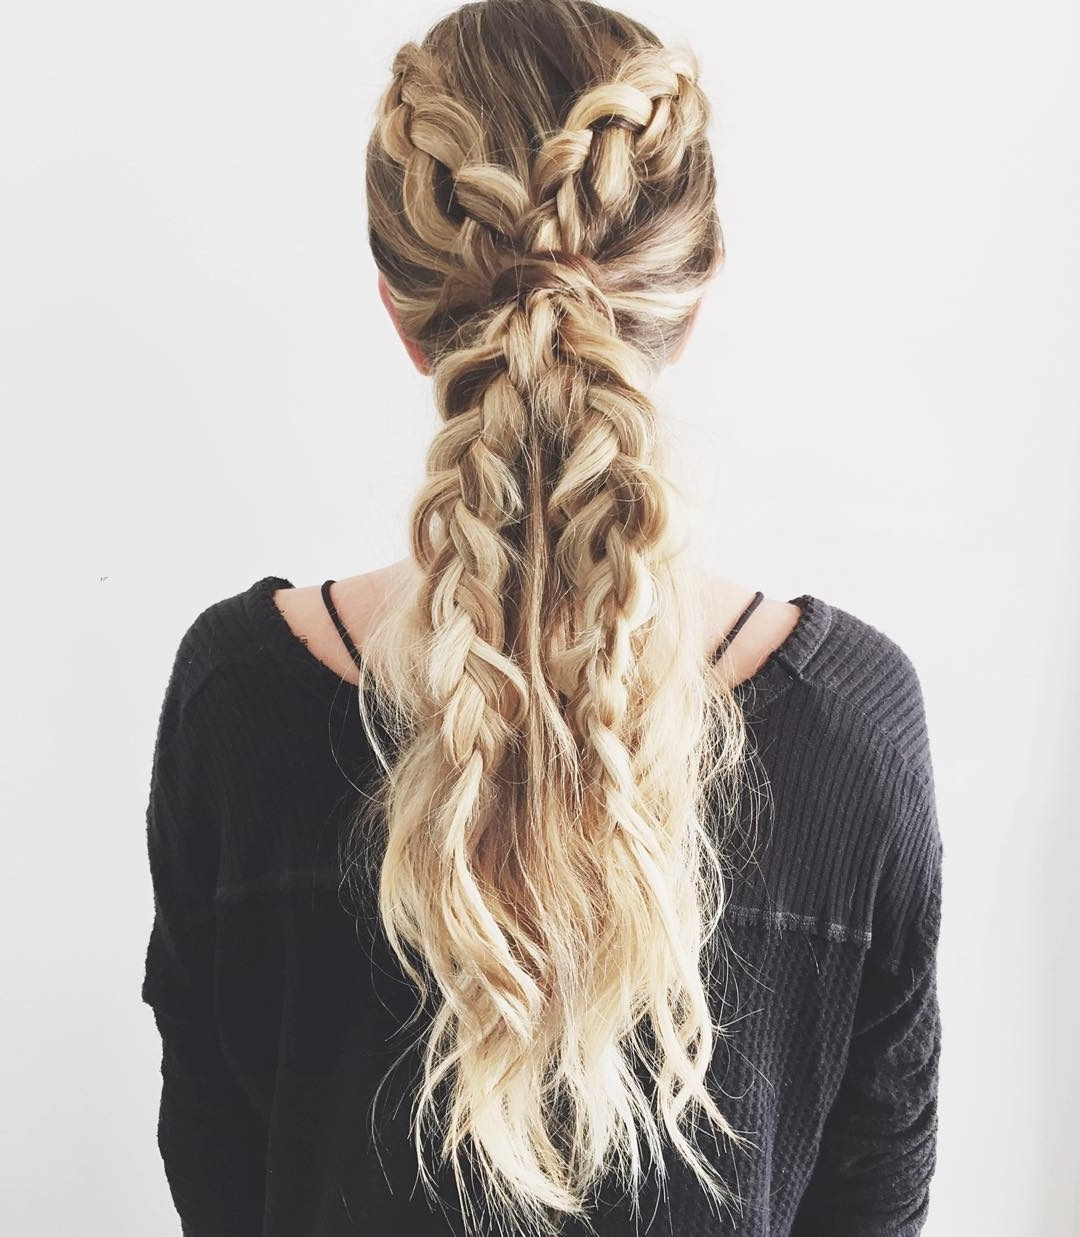 Most Recent Large And Loose Braid Hairstyles With A High Pony Throughout 30 Braided Ponytail Hairstyles To Slay In 2018 (Gallery 6 of 20)